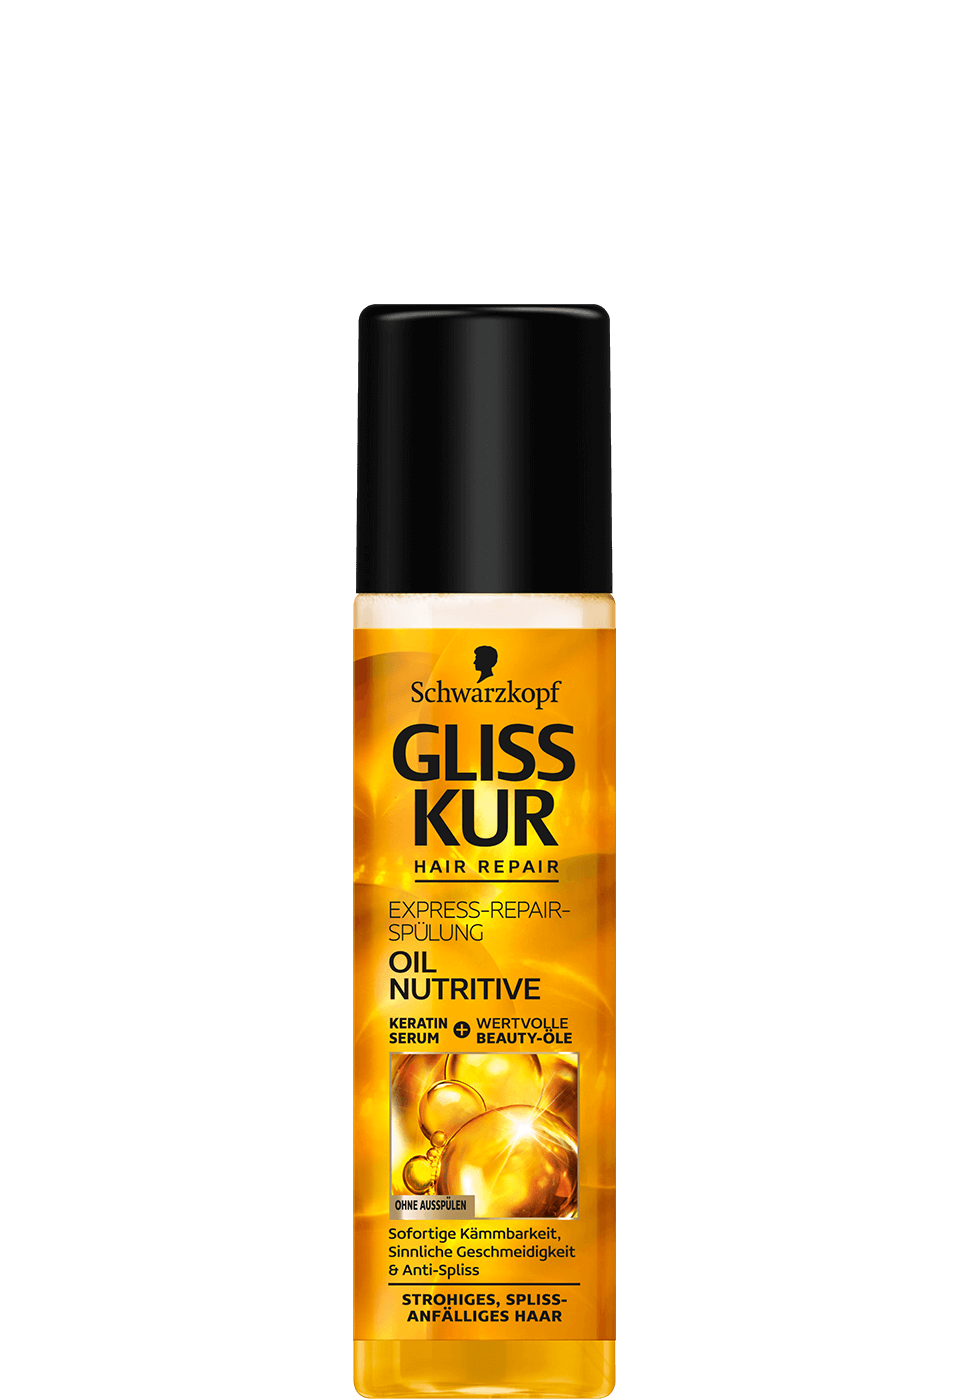 glisskur_ch_oil_nutritive_express_repair_spuelung_970x1400